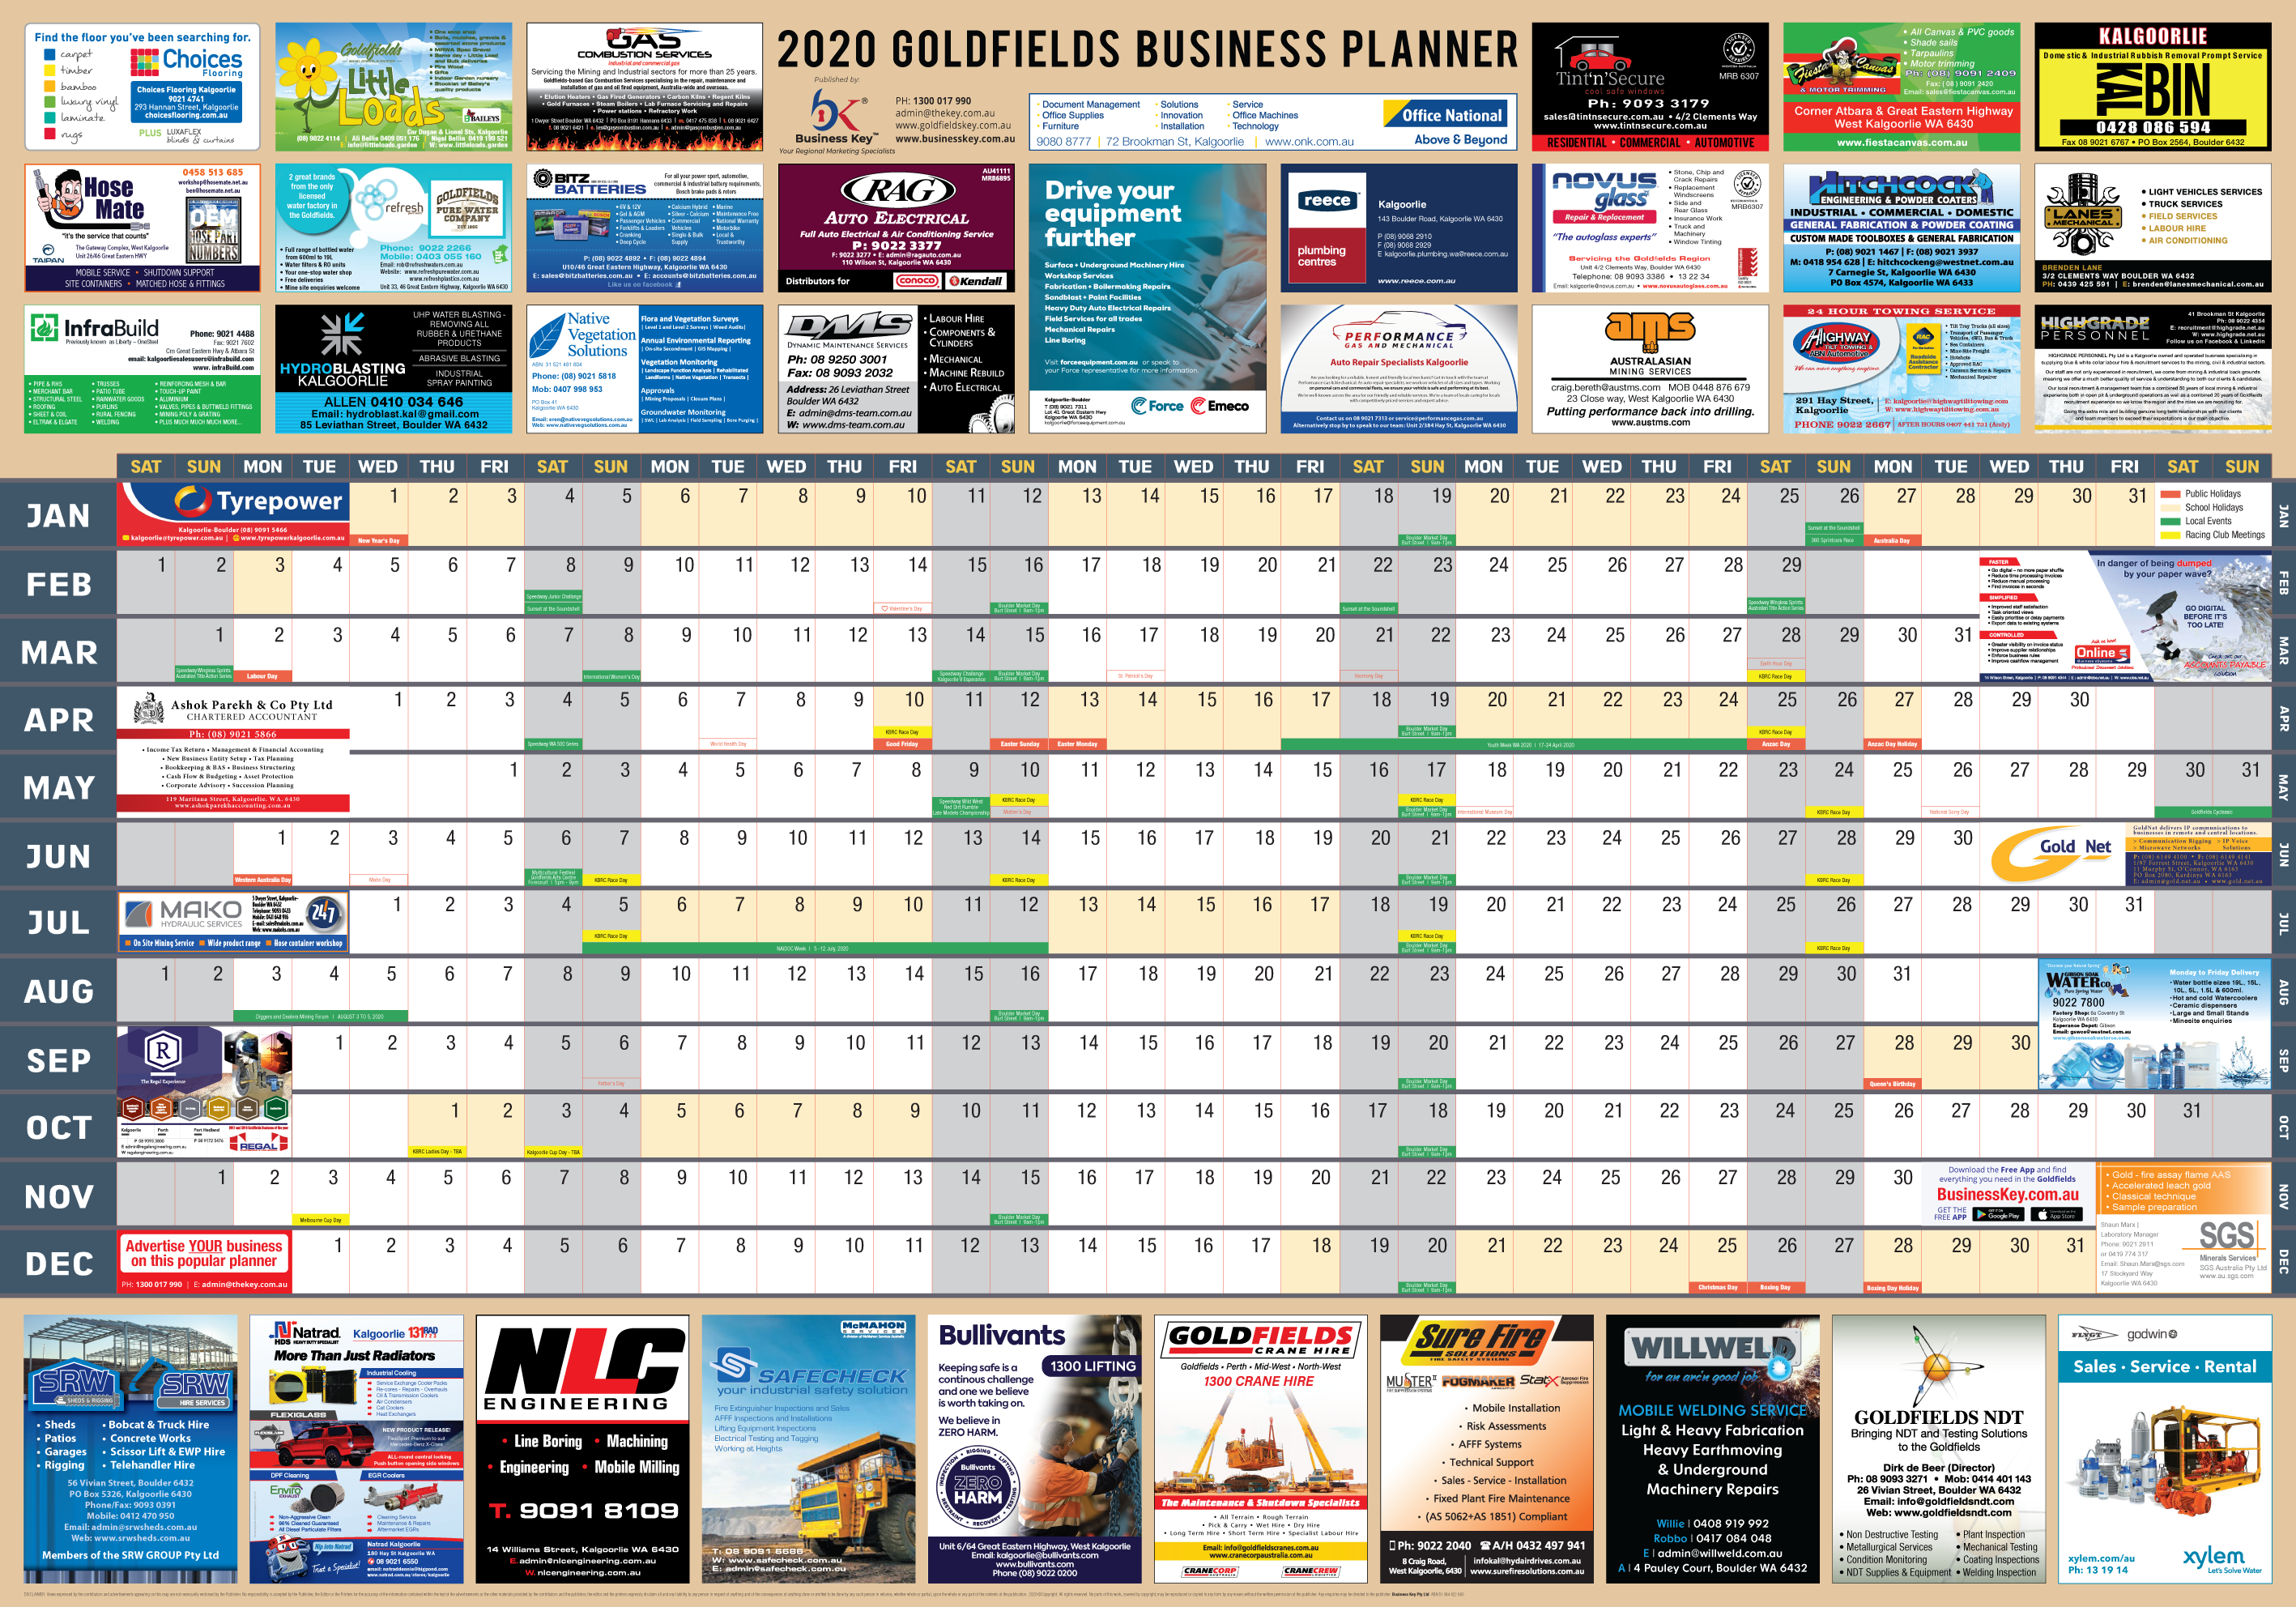 2020-Goldfields-Business-Planner-FINAL-web